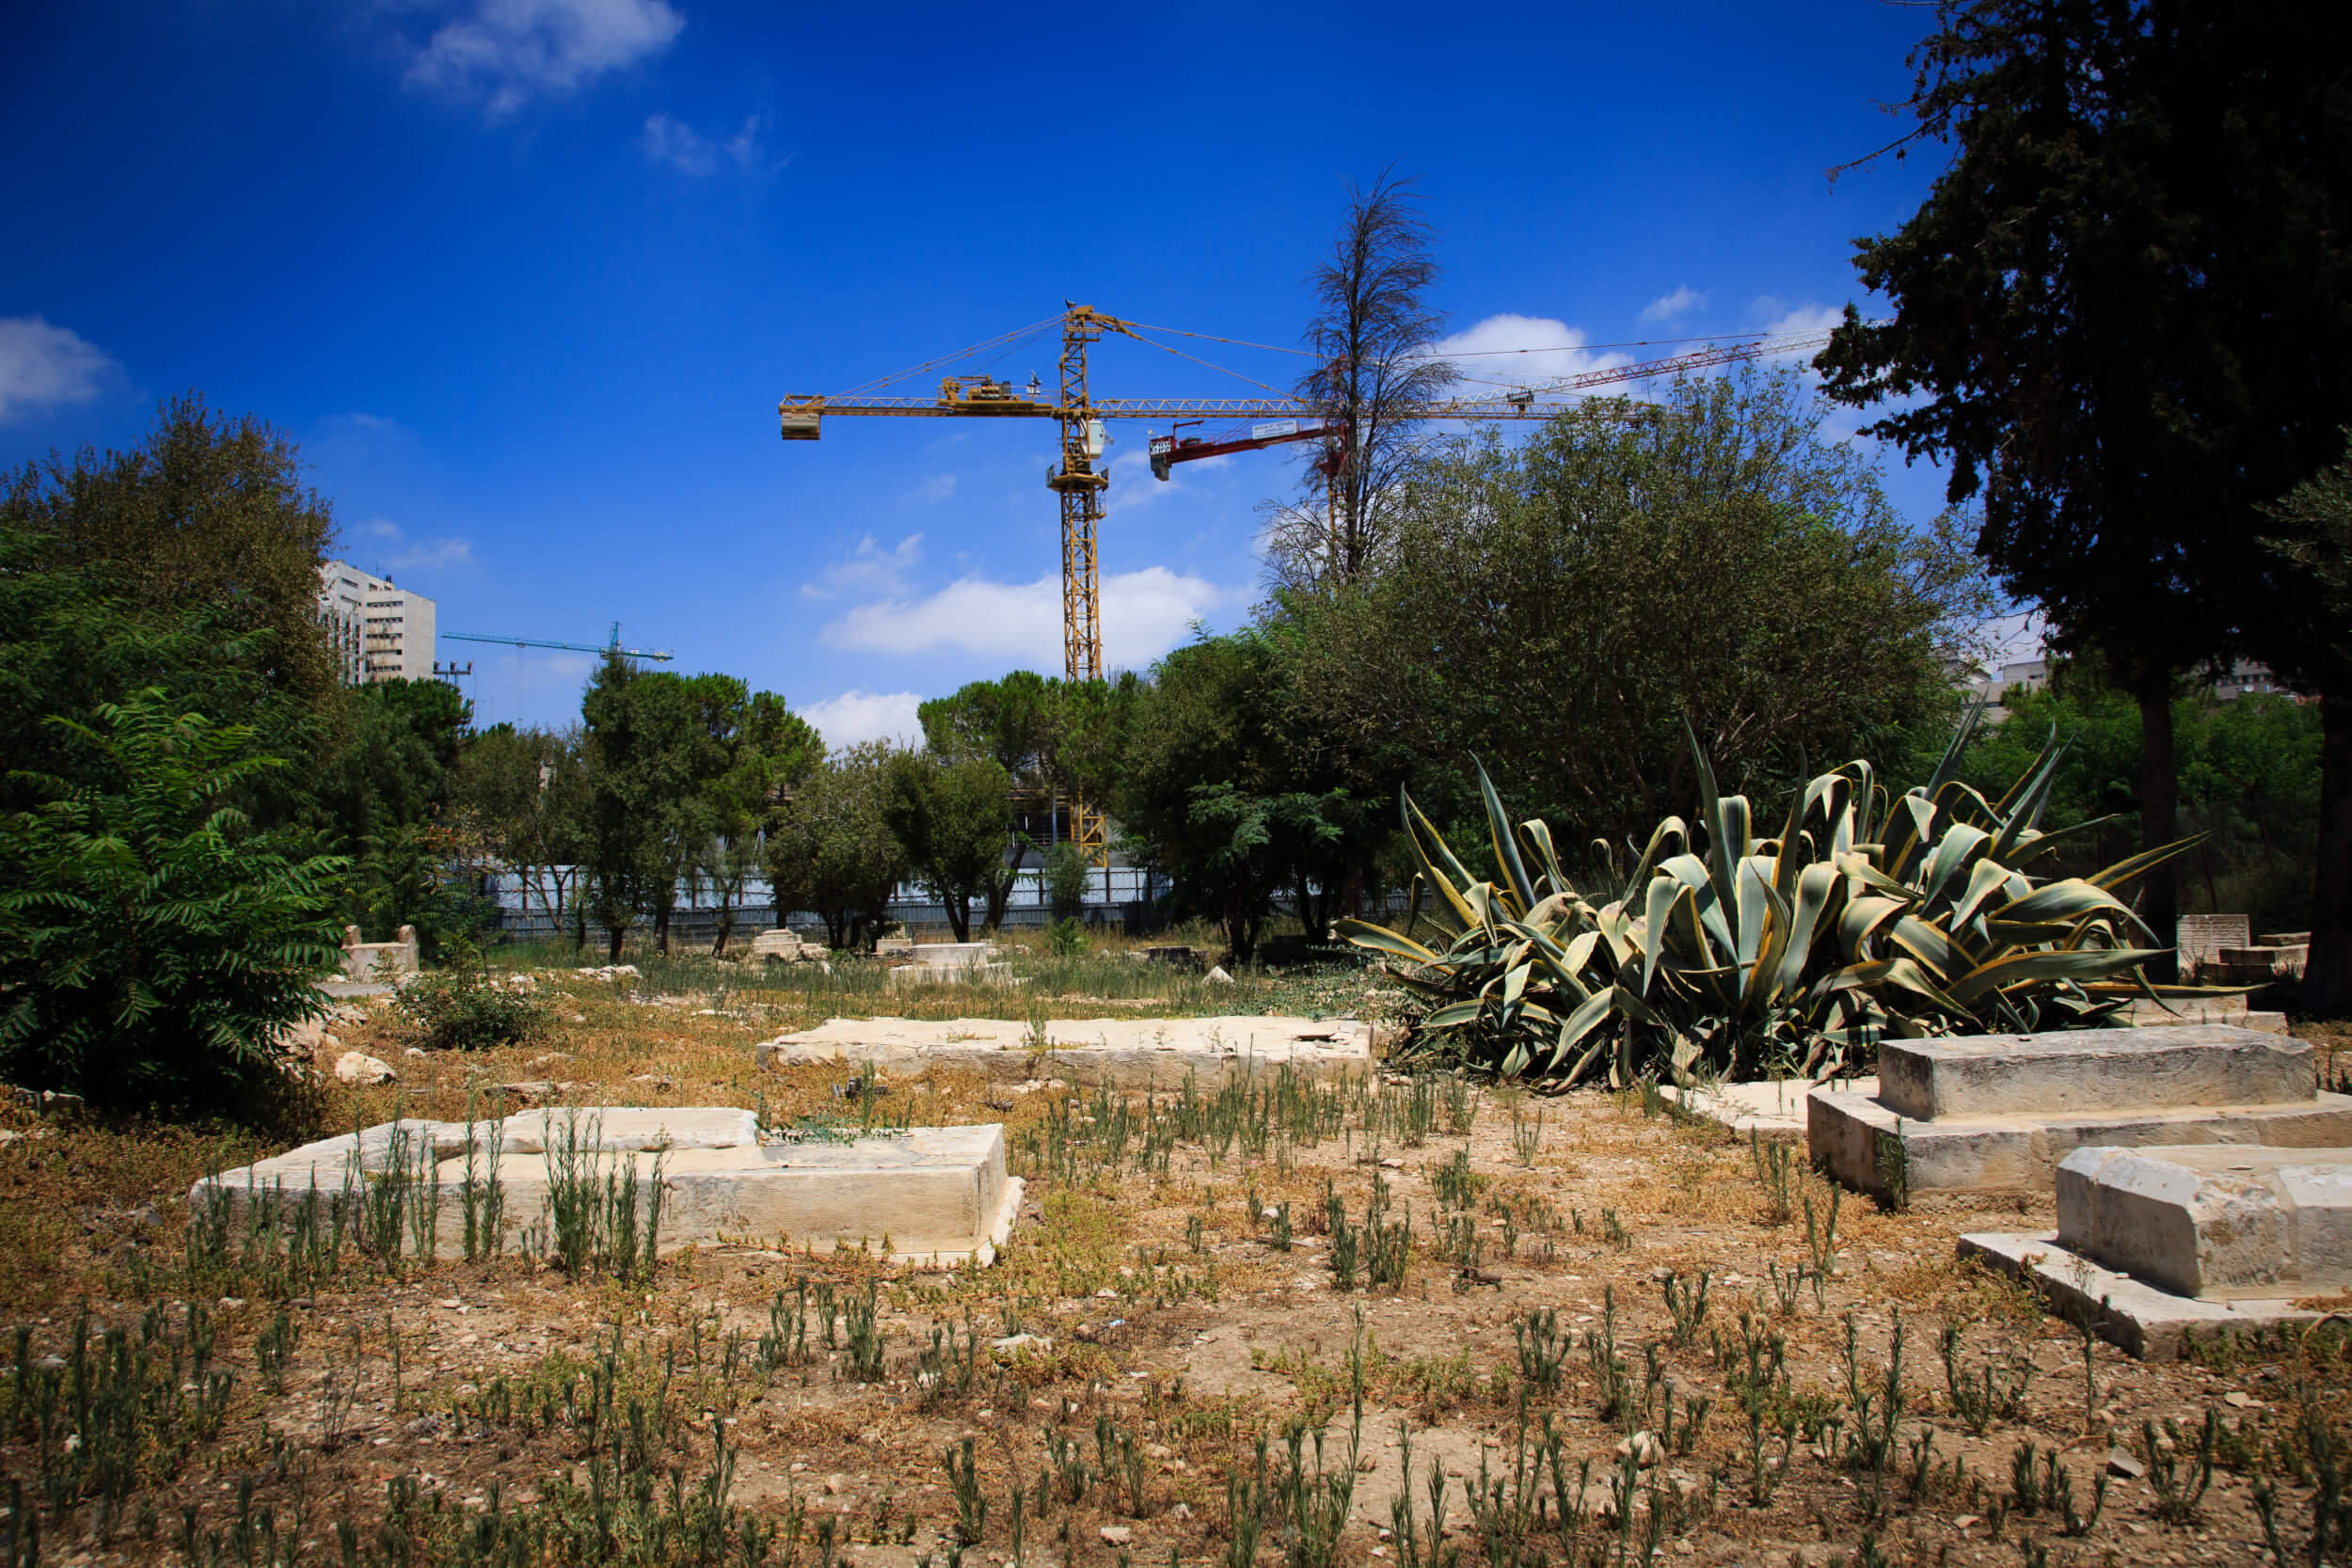 Tombs in the historic cemetery of Mamilla in West Jerusalem, in the background the construction site of the Israeli Museum of Tolerance to set to open in 2017. (Photo: Pablo Castellani)